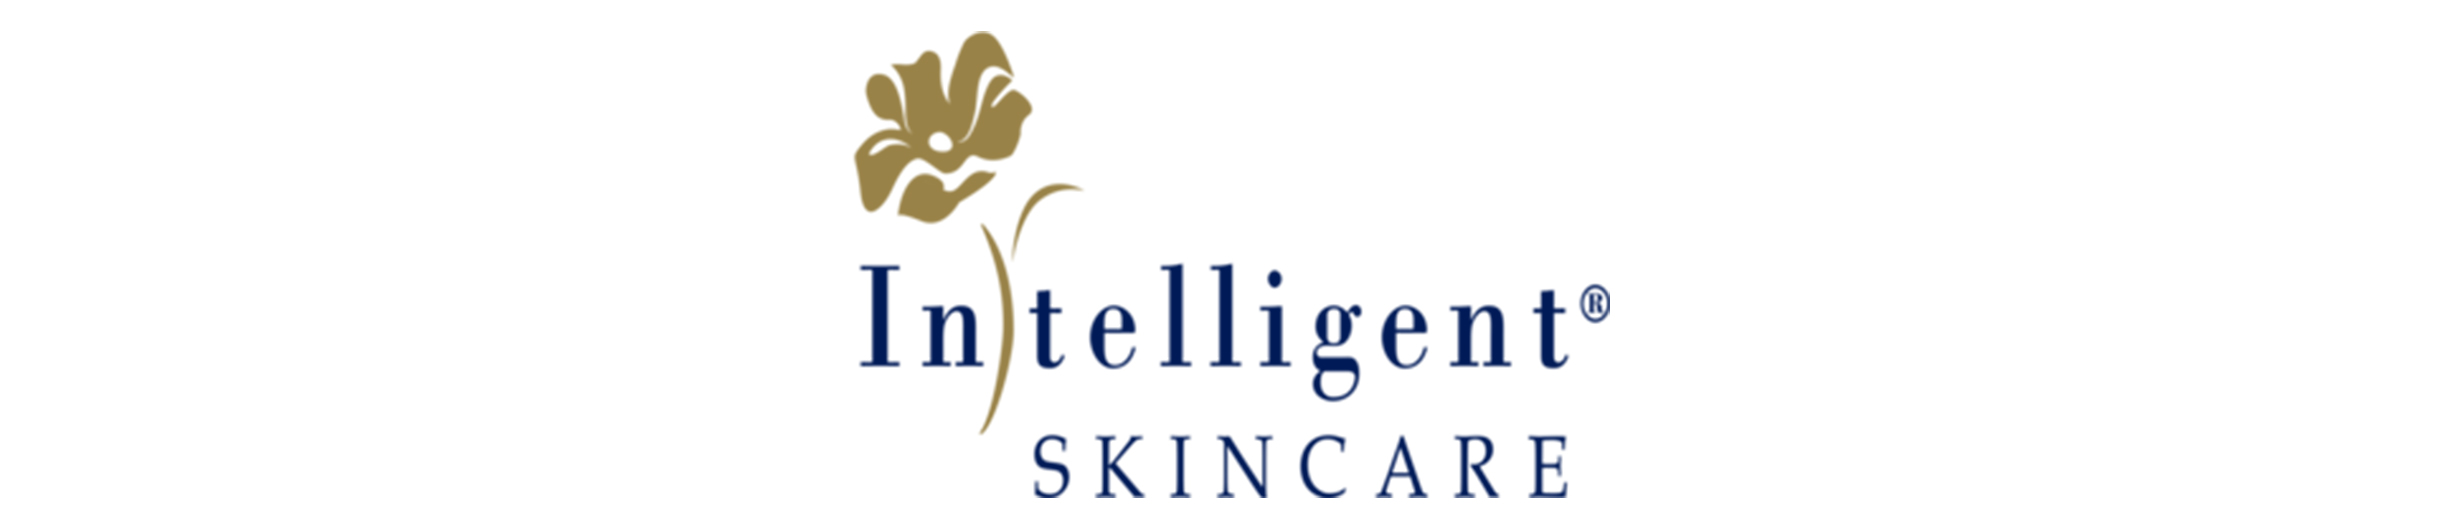 INTELLIGENT%20SKIN%20CARE%20INC.jpg?1603